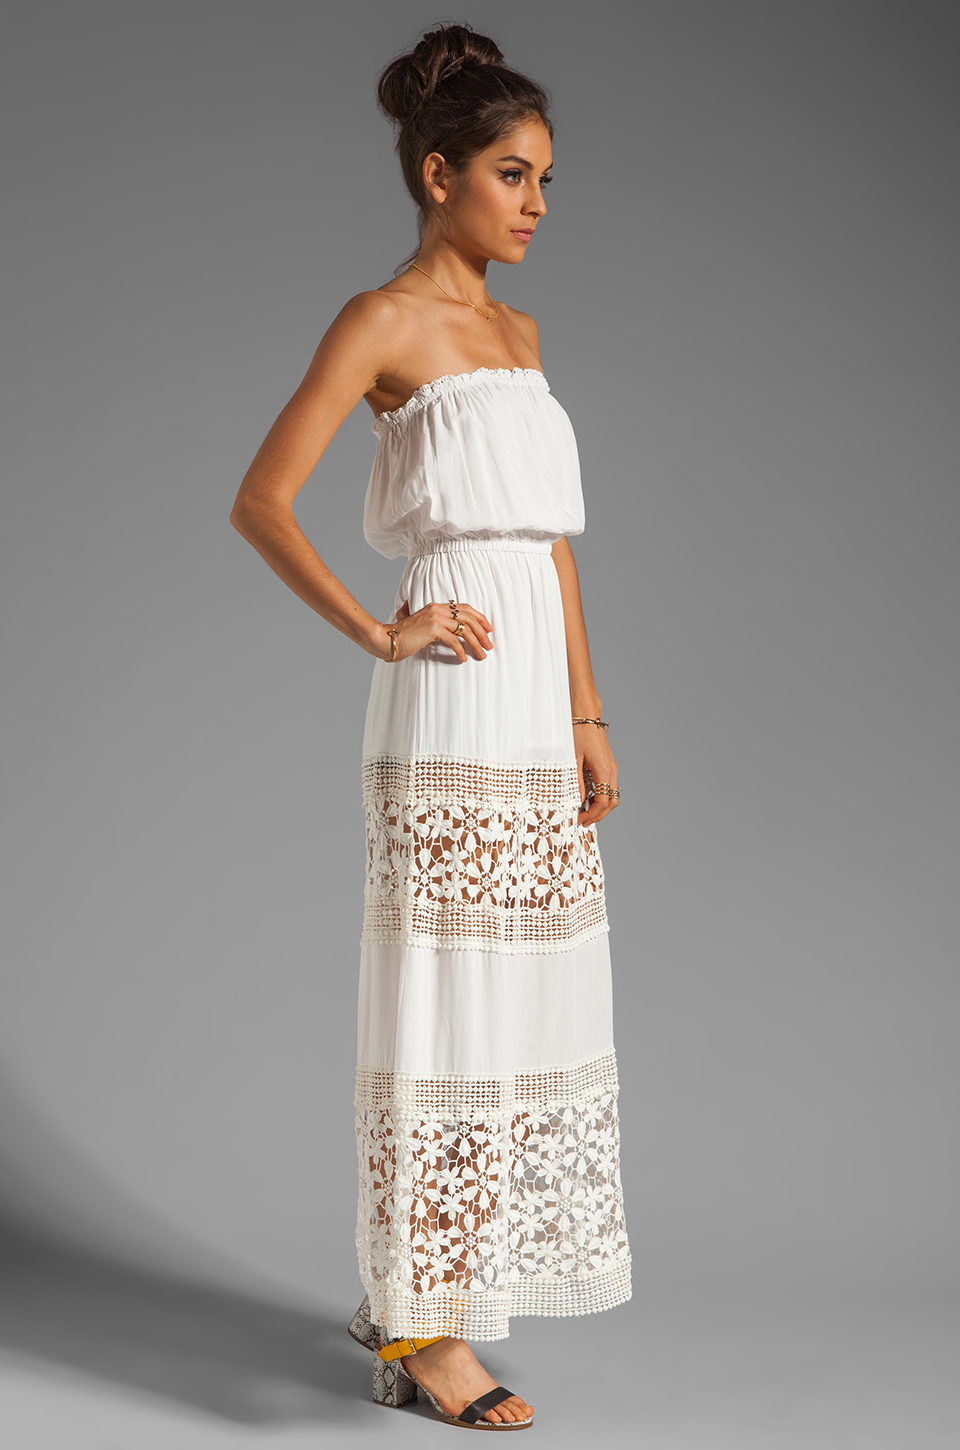 6 SHORE ROAD Charlotte's Maxi Dress in Shell